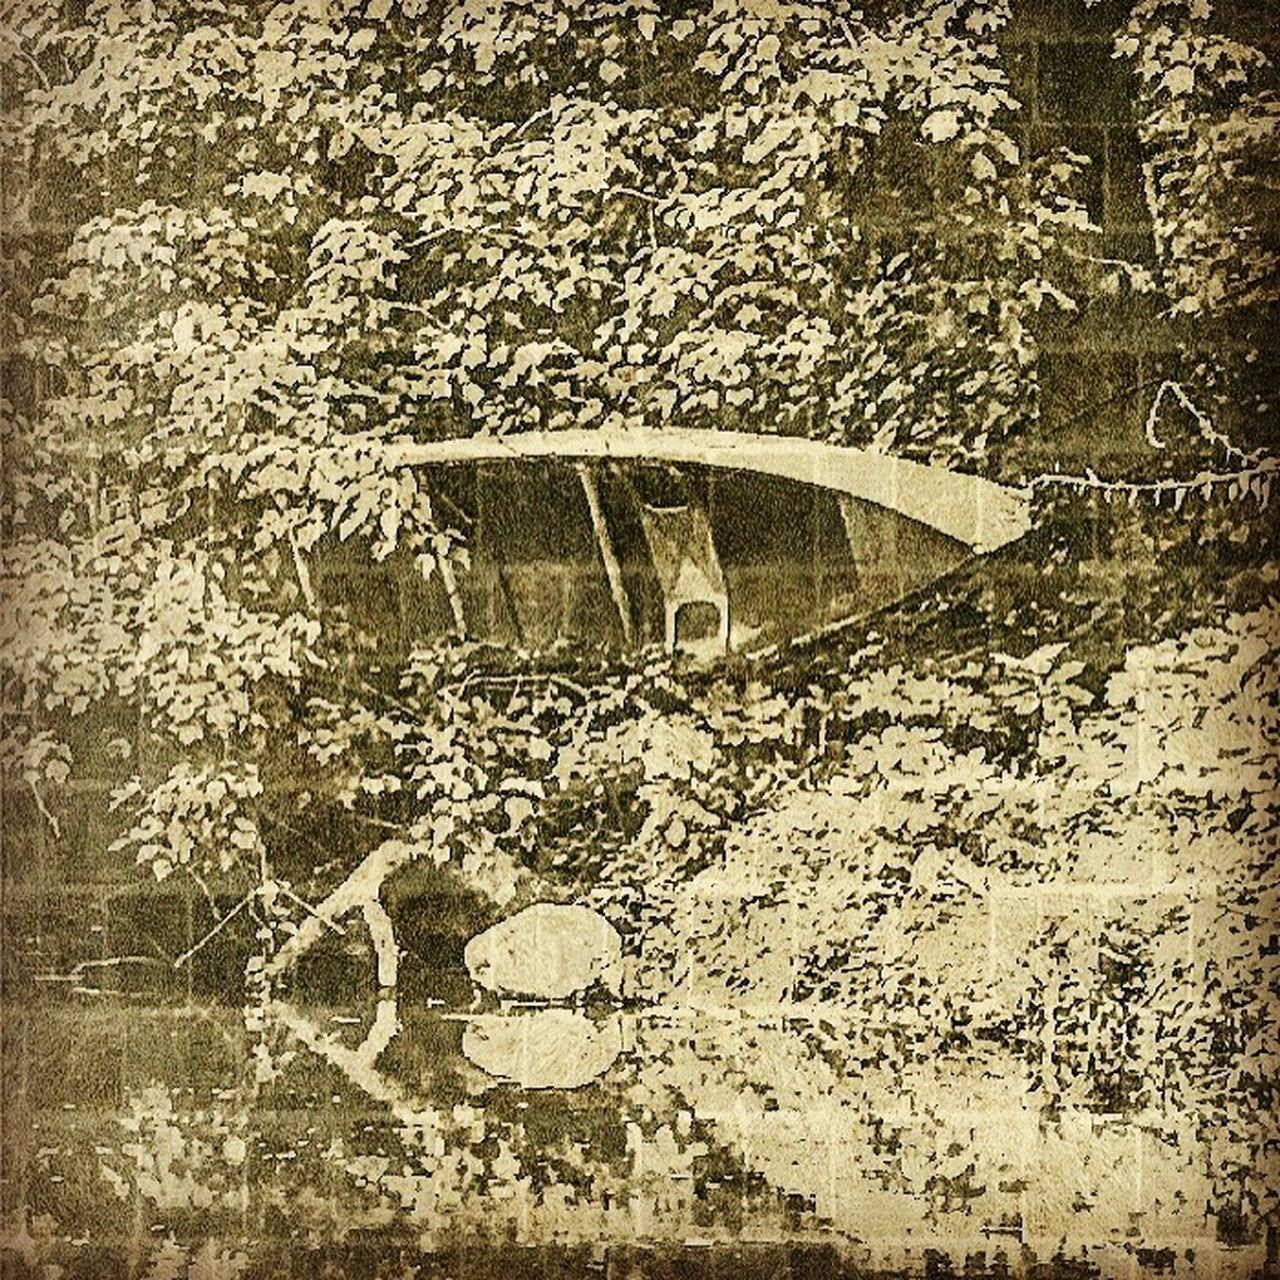 Previous post canoe along the Delaware Day No People Water Close-up Outdoors Camerafilters Landscape Sunlight Iphonephotography Vintage Affect Scenics Mode Of Transport Abstract Photography